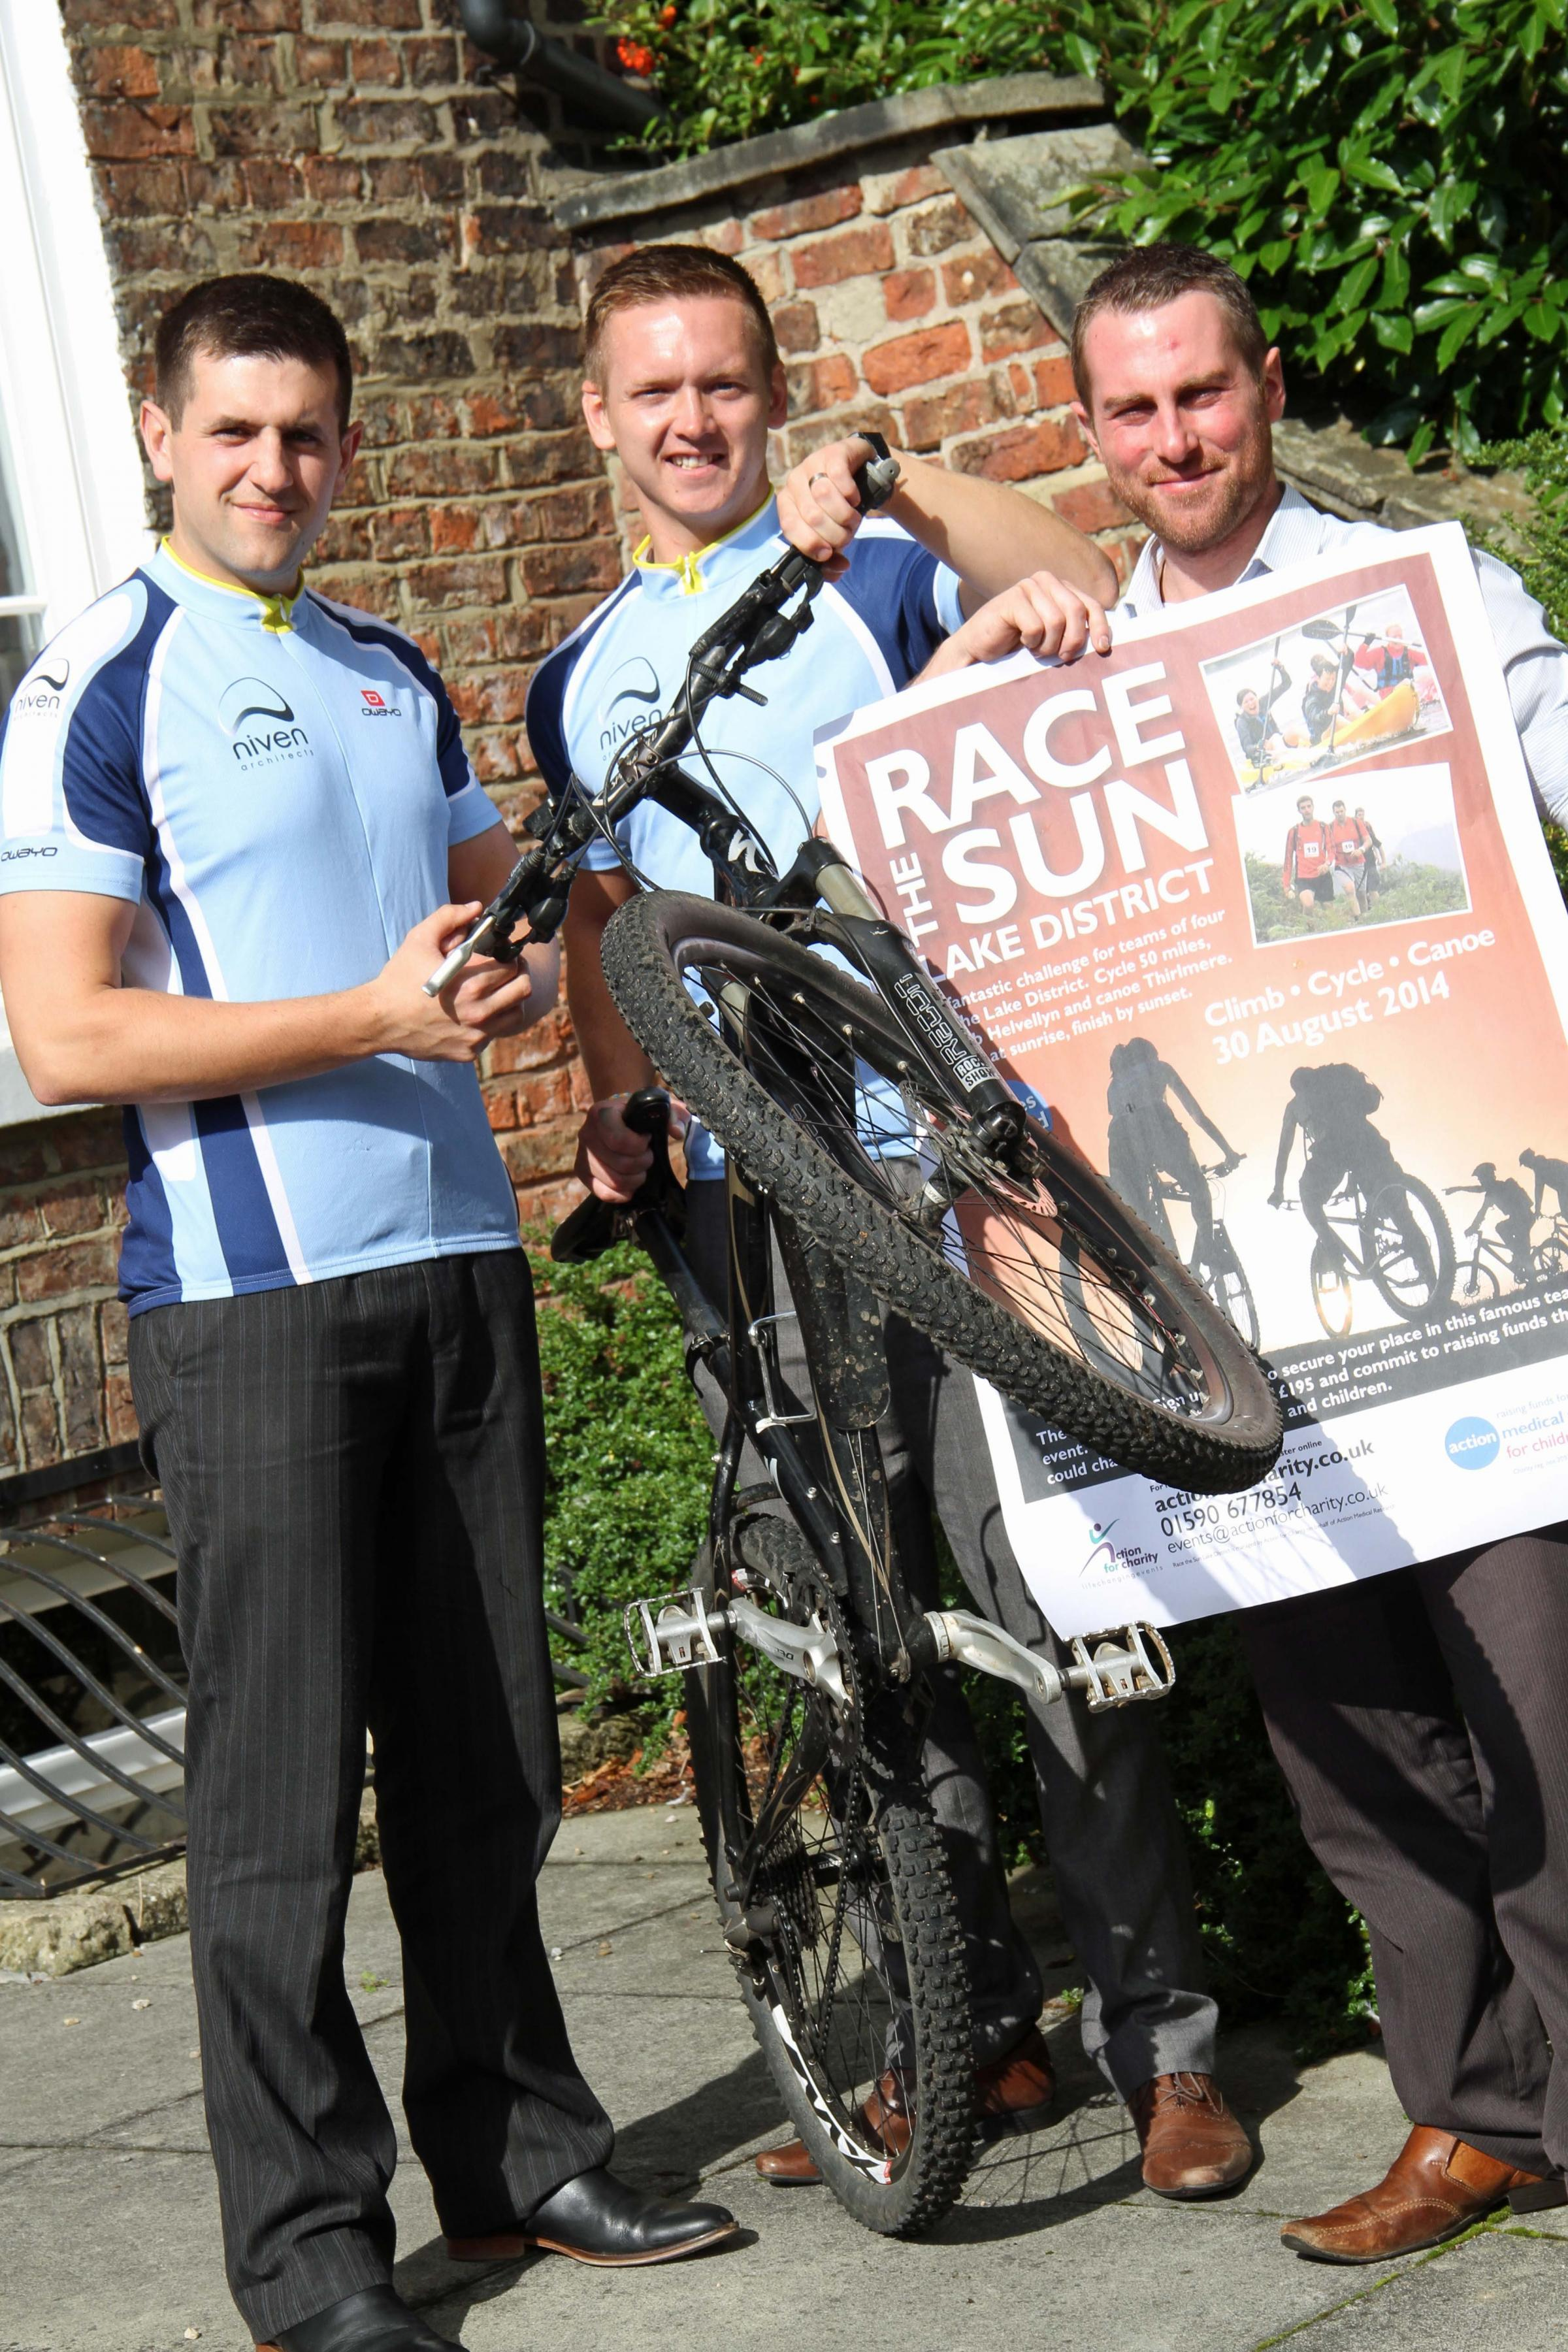 Architect team will cycle, canoe and climb for charity